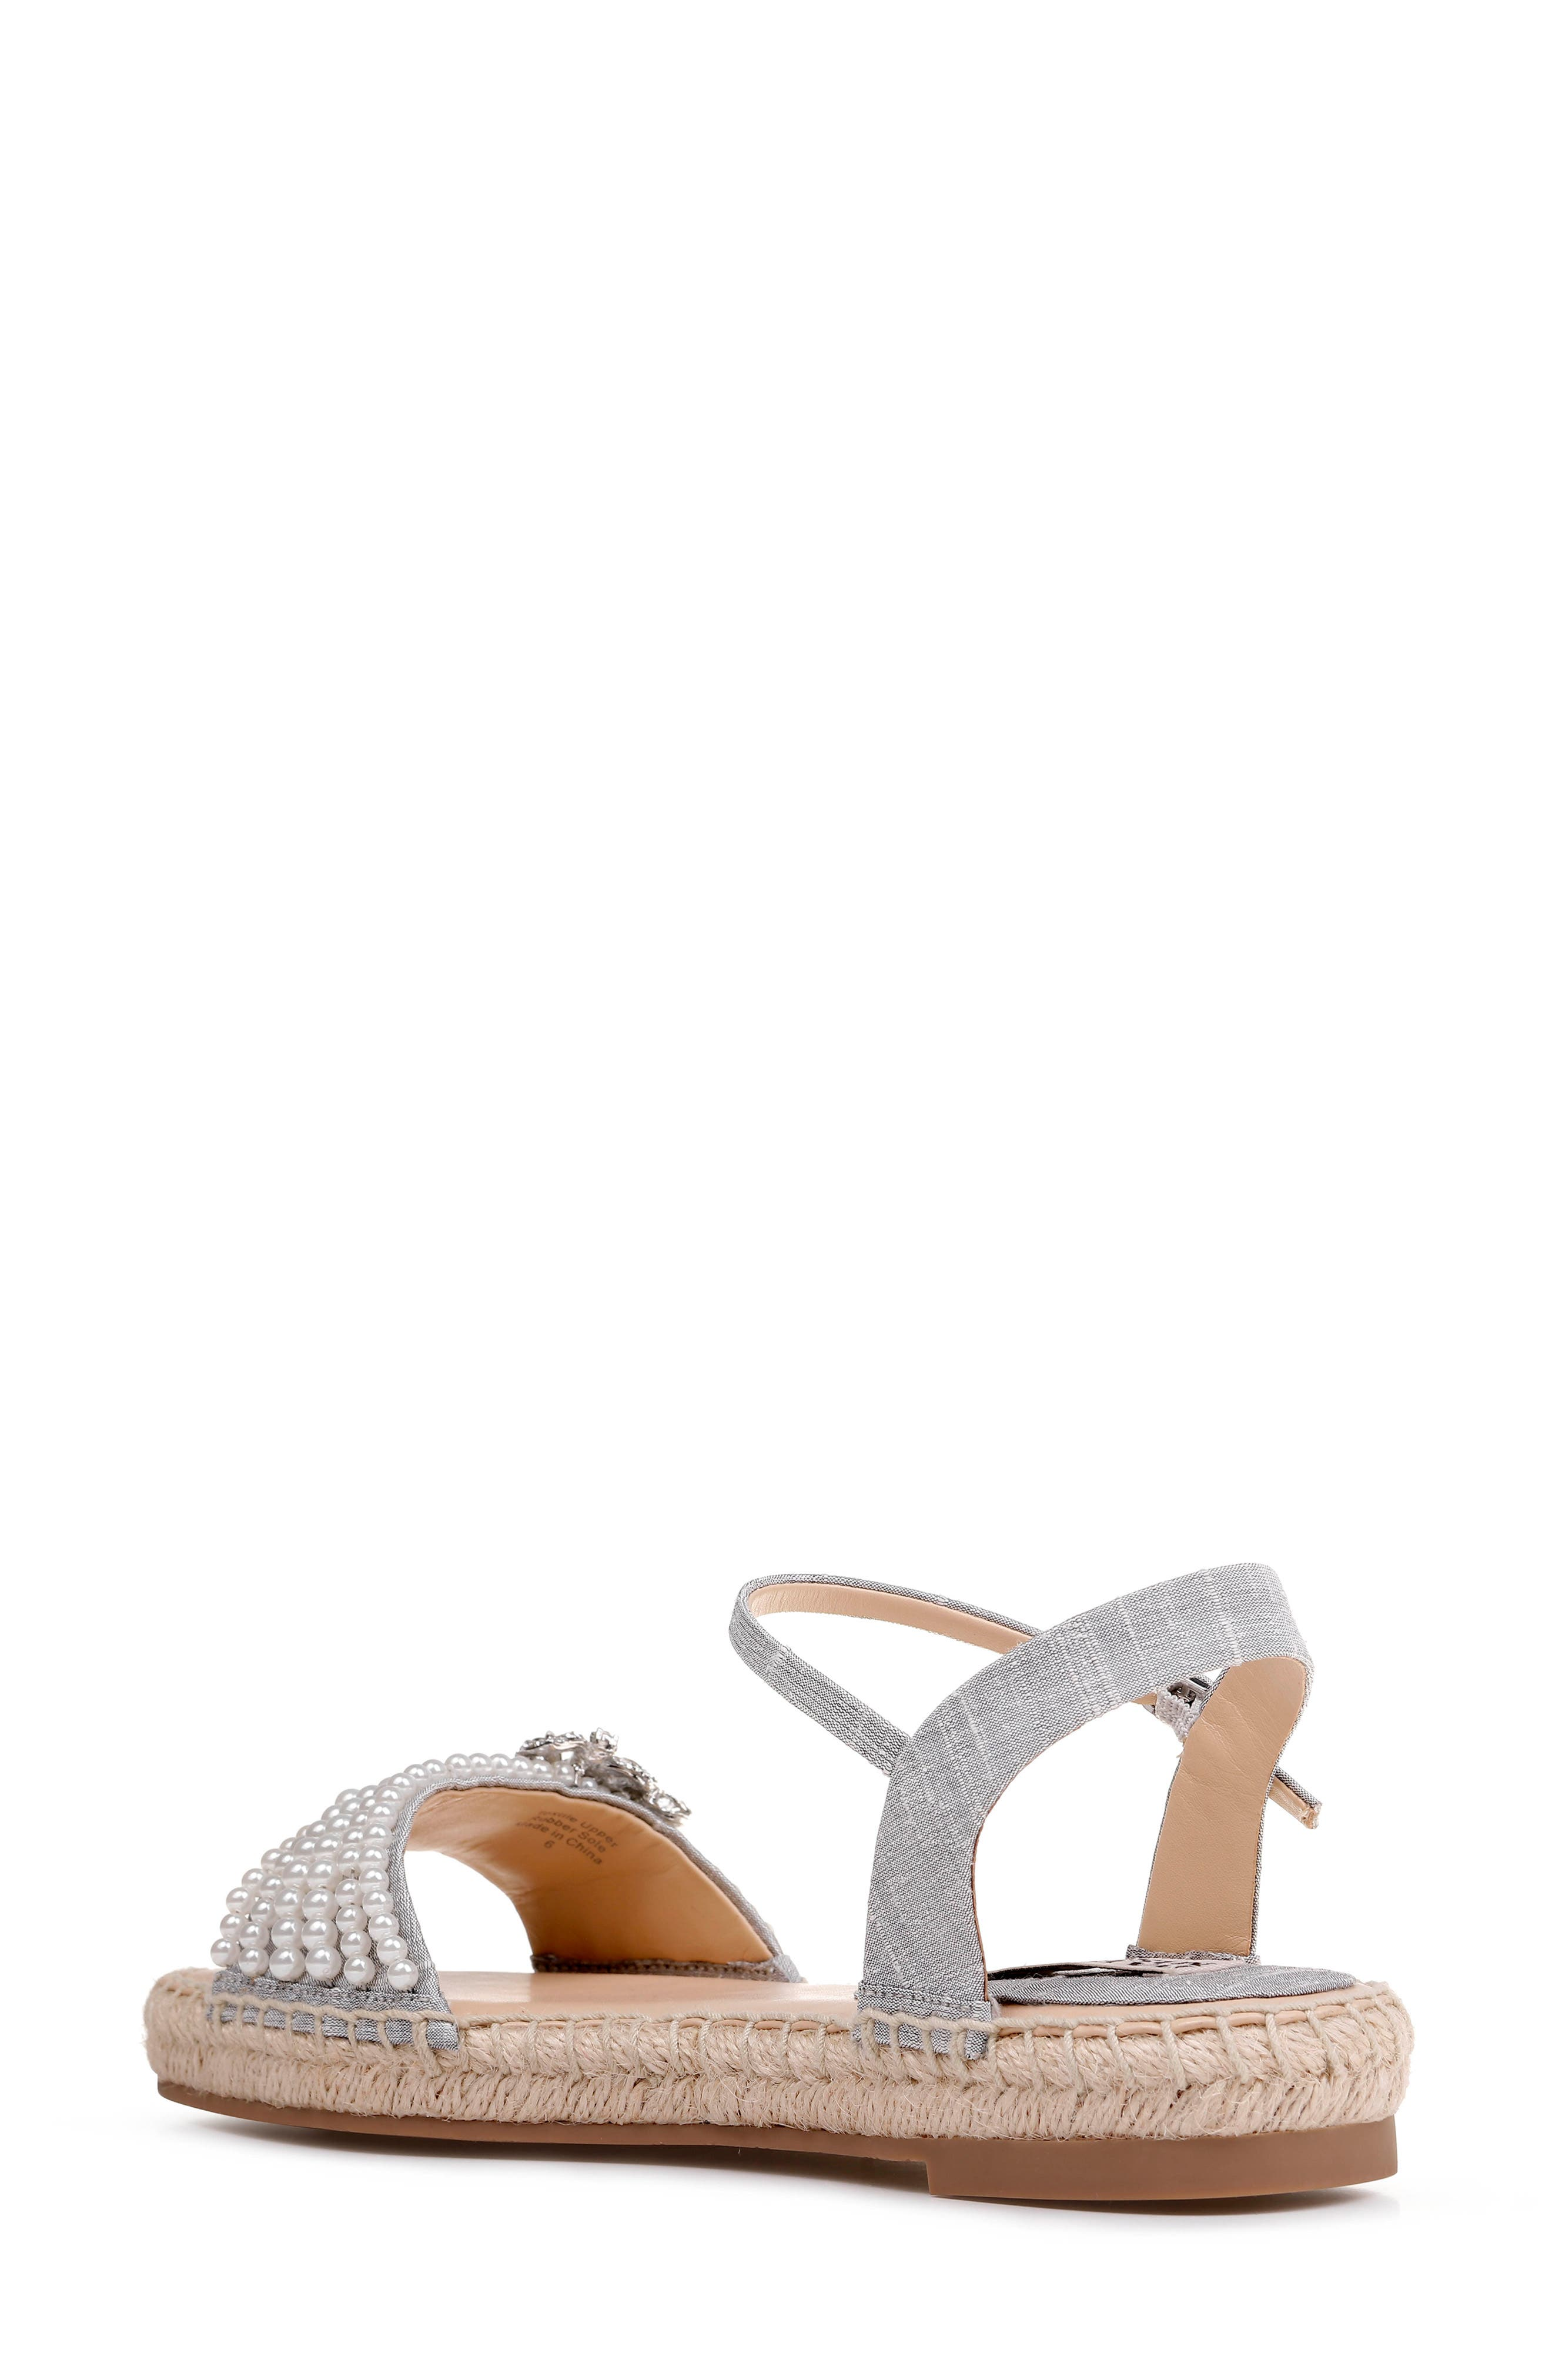 Badgley Mischka Leandra Espadrille Sandal,                             Alternate thumbnail 2, color,                             SILVER FABRIC